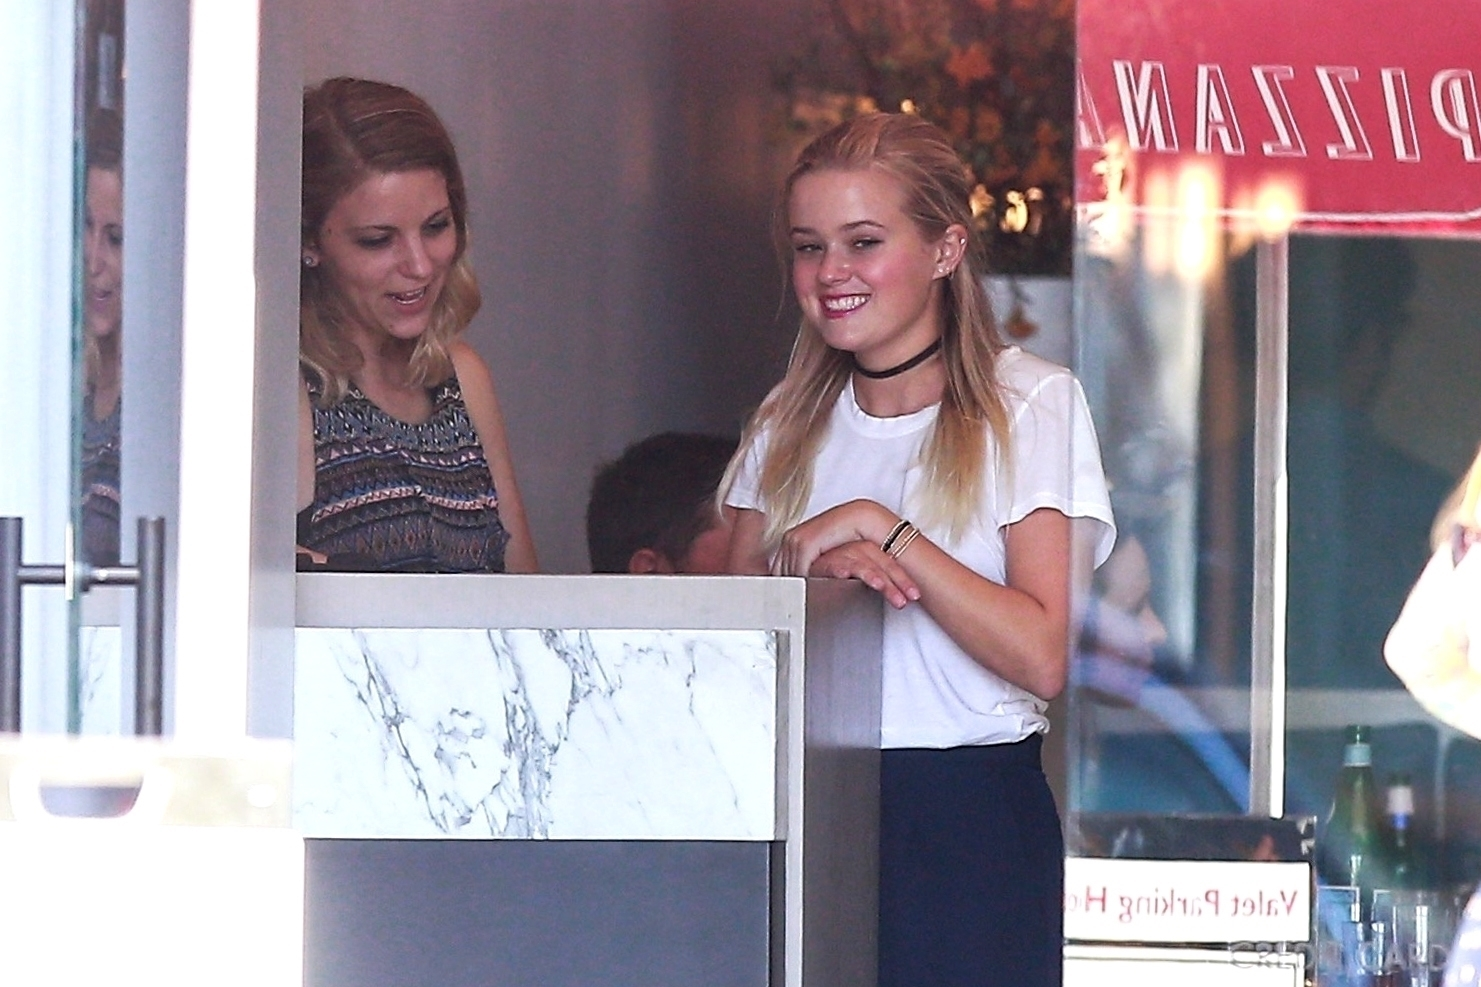 Ava Witherspoon